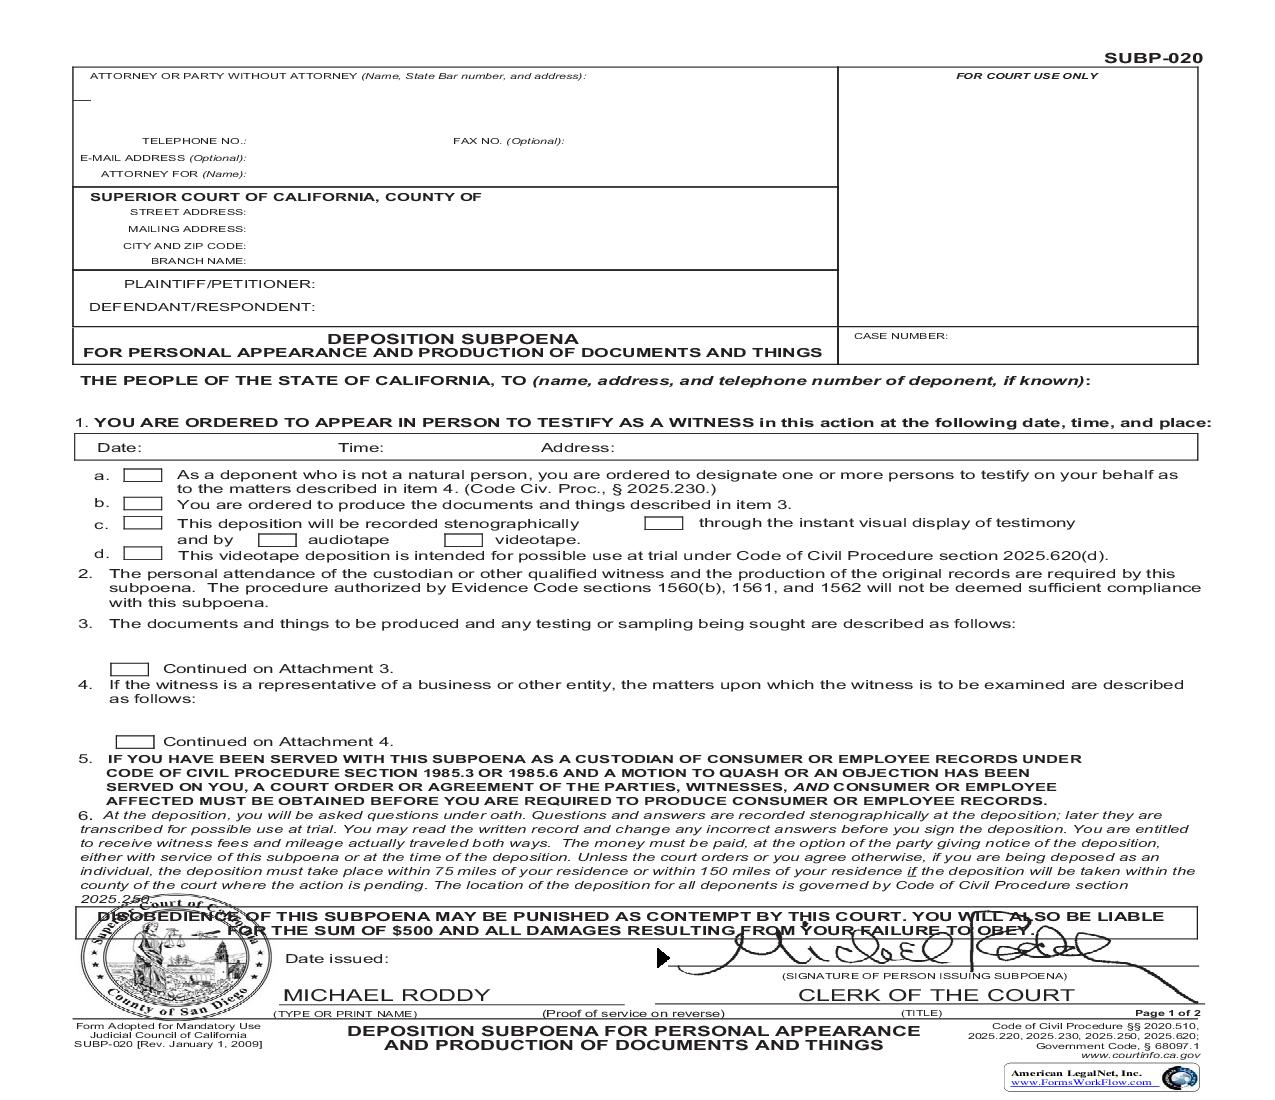 Deposition Subpoena For Personal Appearance And Production Of Documents (San Diego Pre-Issued) {SUBP-020} | Pdf Fpdf Doc Docx | California